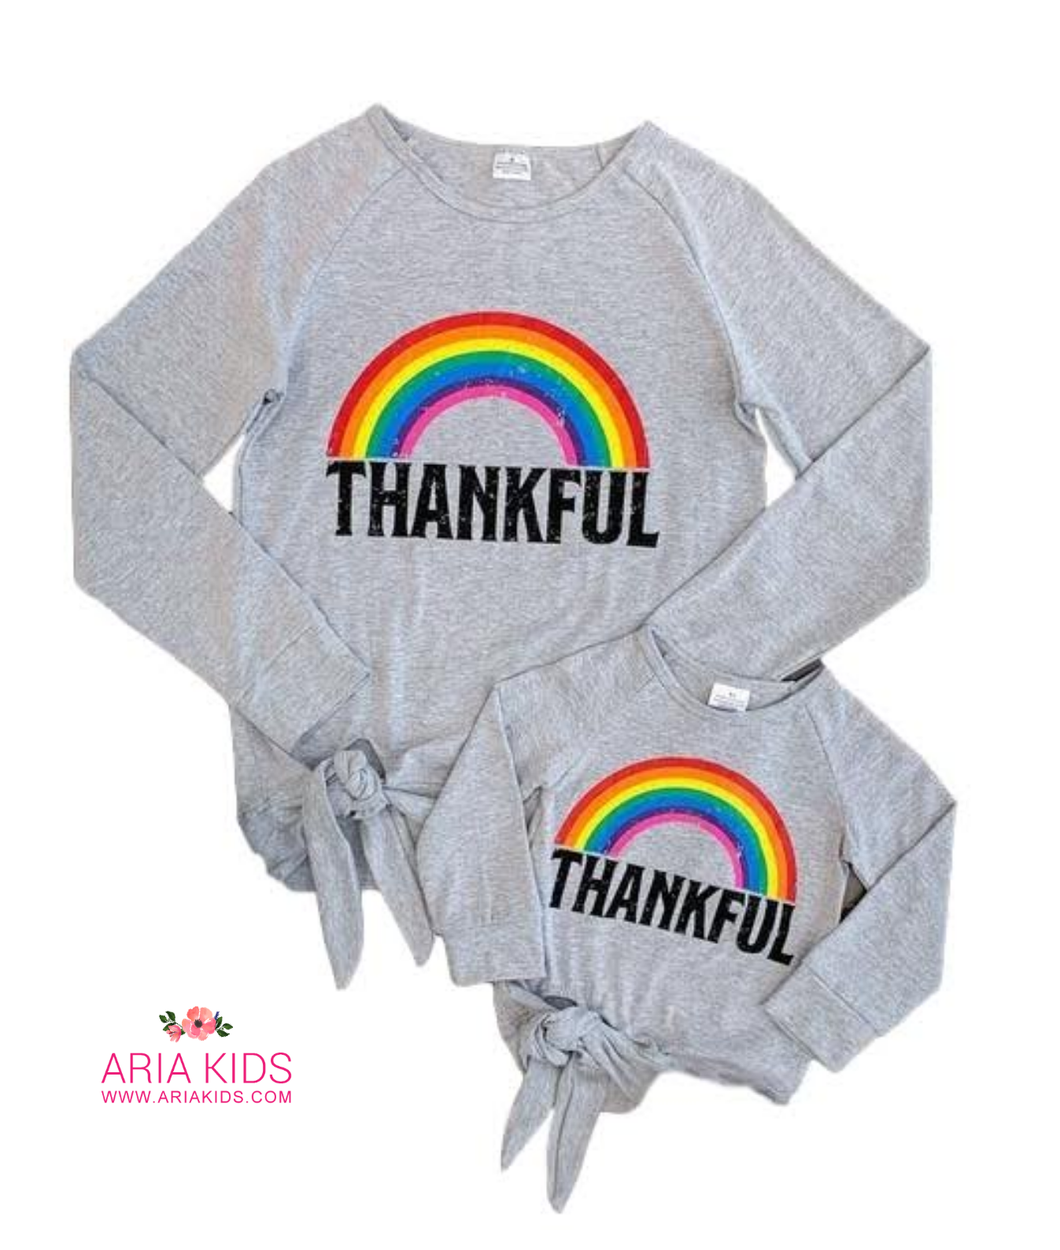 Mommy & Me Rainbow Thankful Shirt - ARIA KIDS